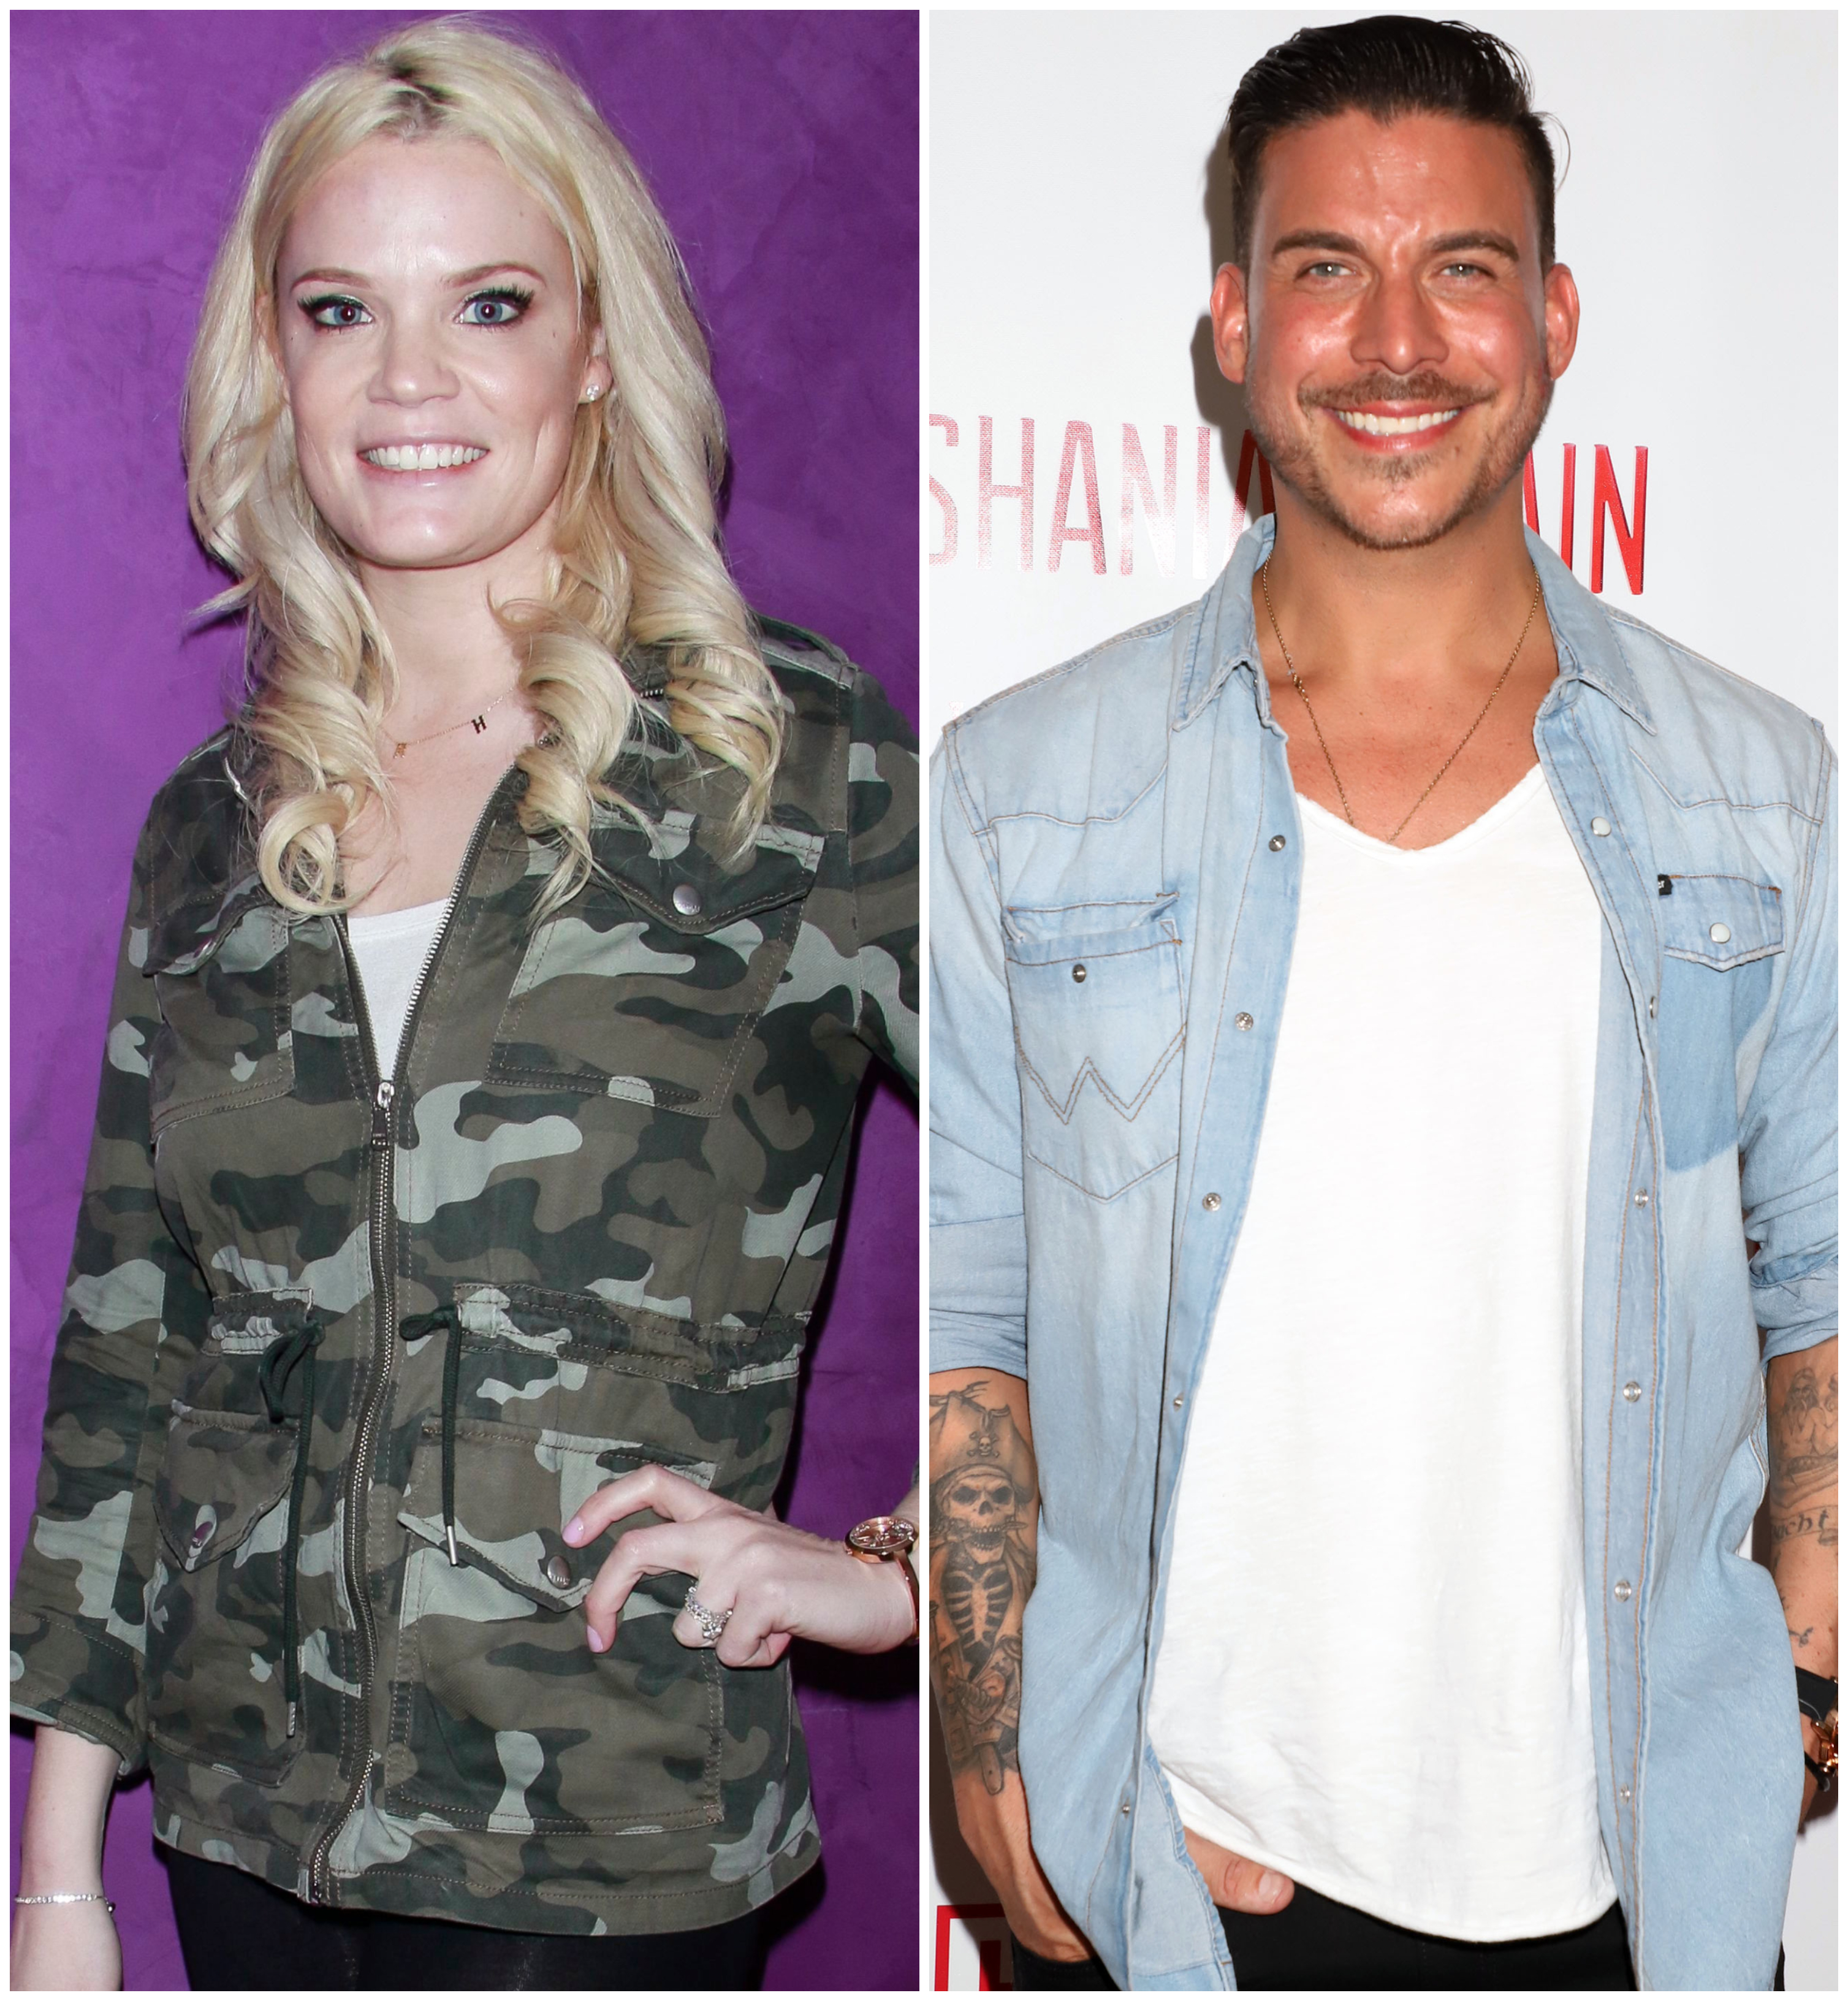 90 Day Fiance's Ashley Martson Calls on Bravo to Fire Jax Taylor for Racist Comment About Her Husband Jay Smith